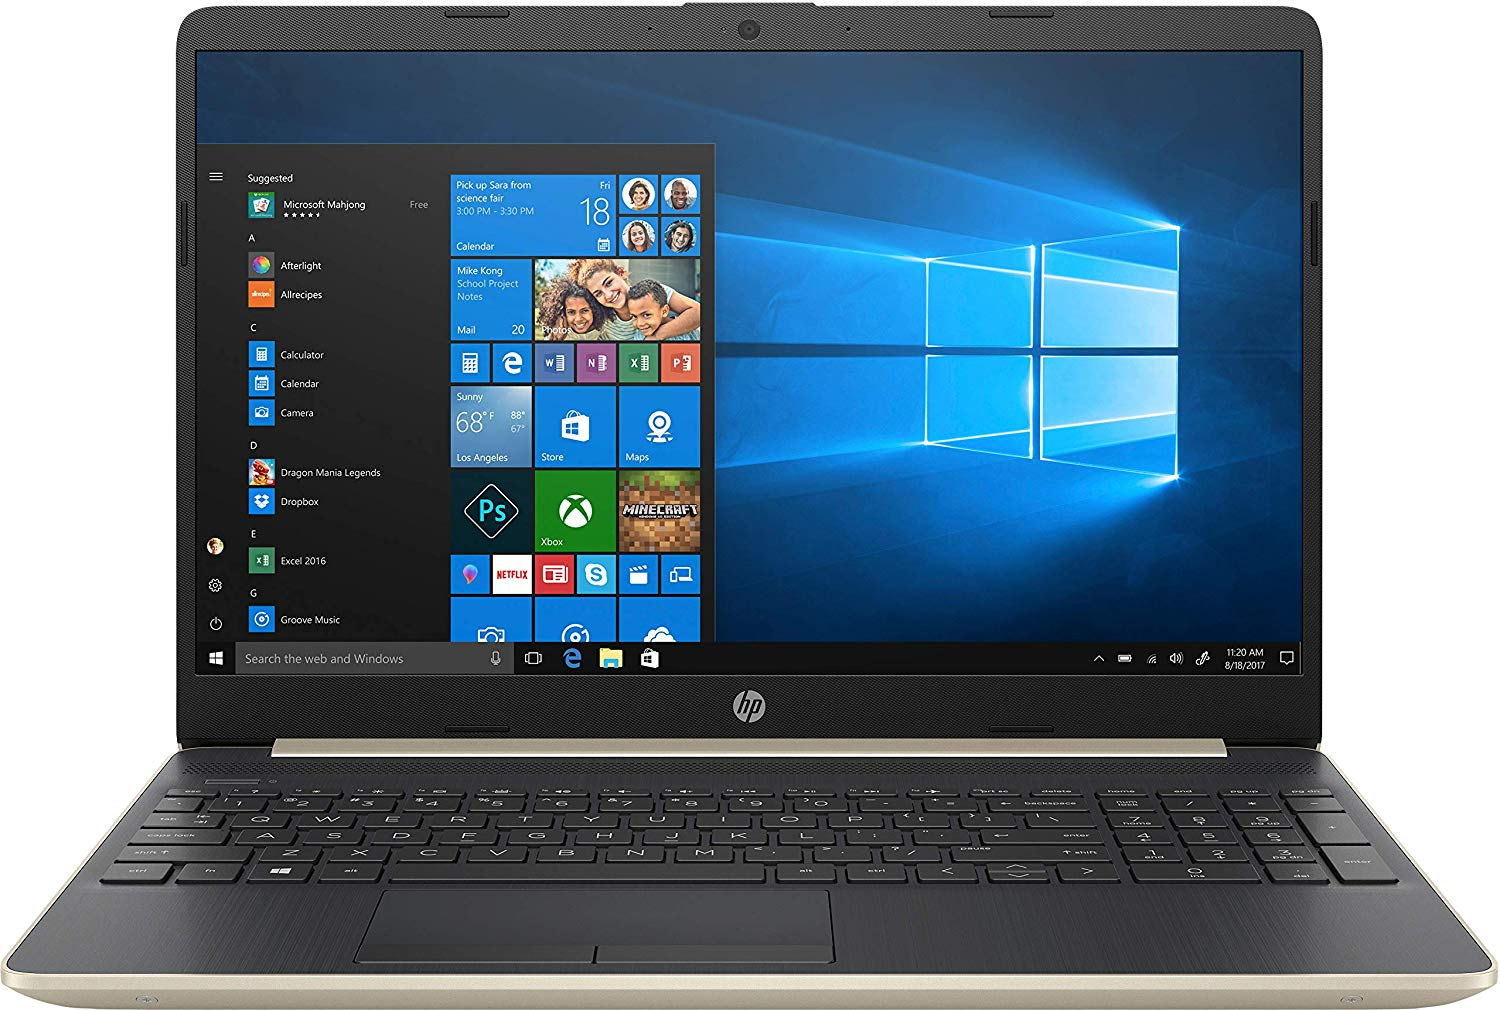 HP Pavilion Laptop- High-Performance Laptop